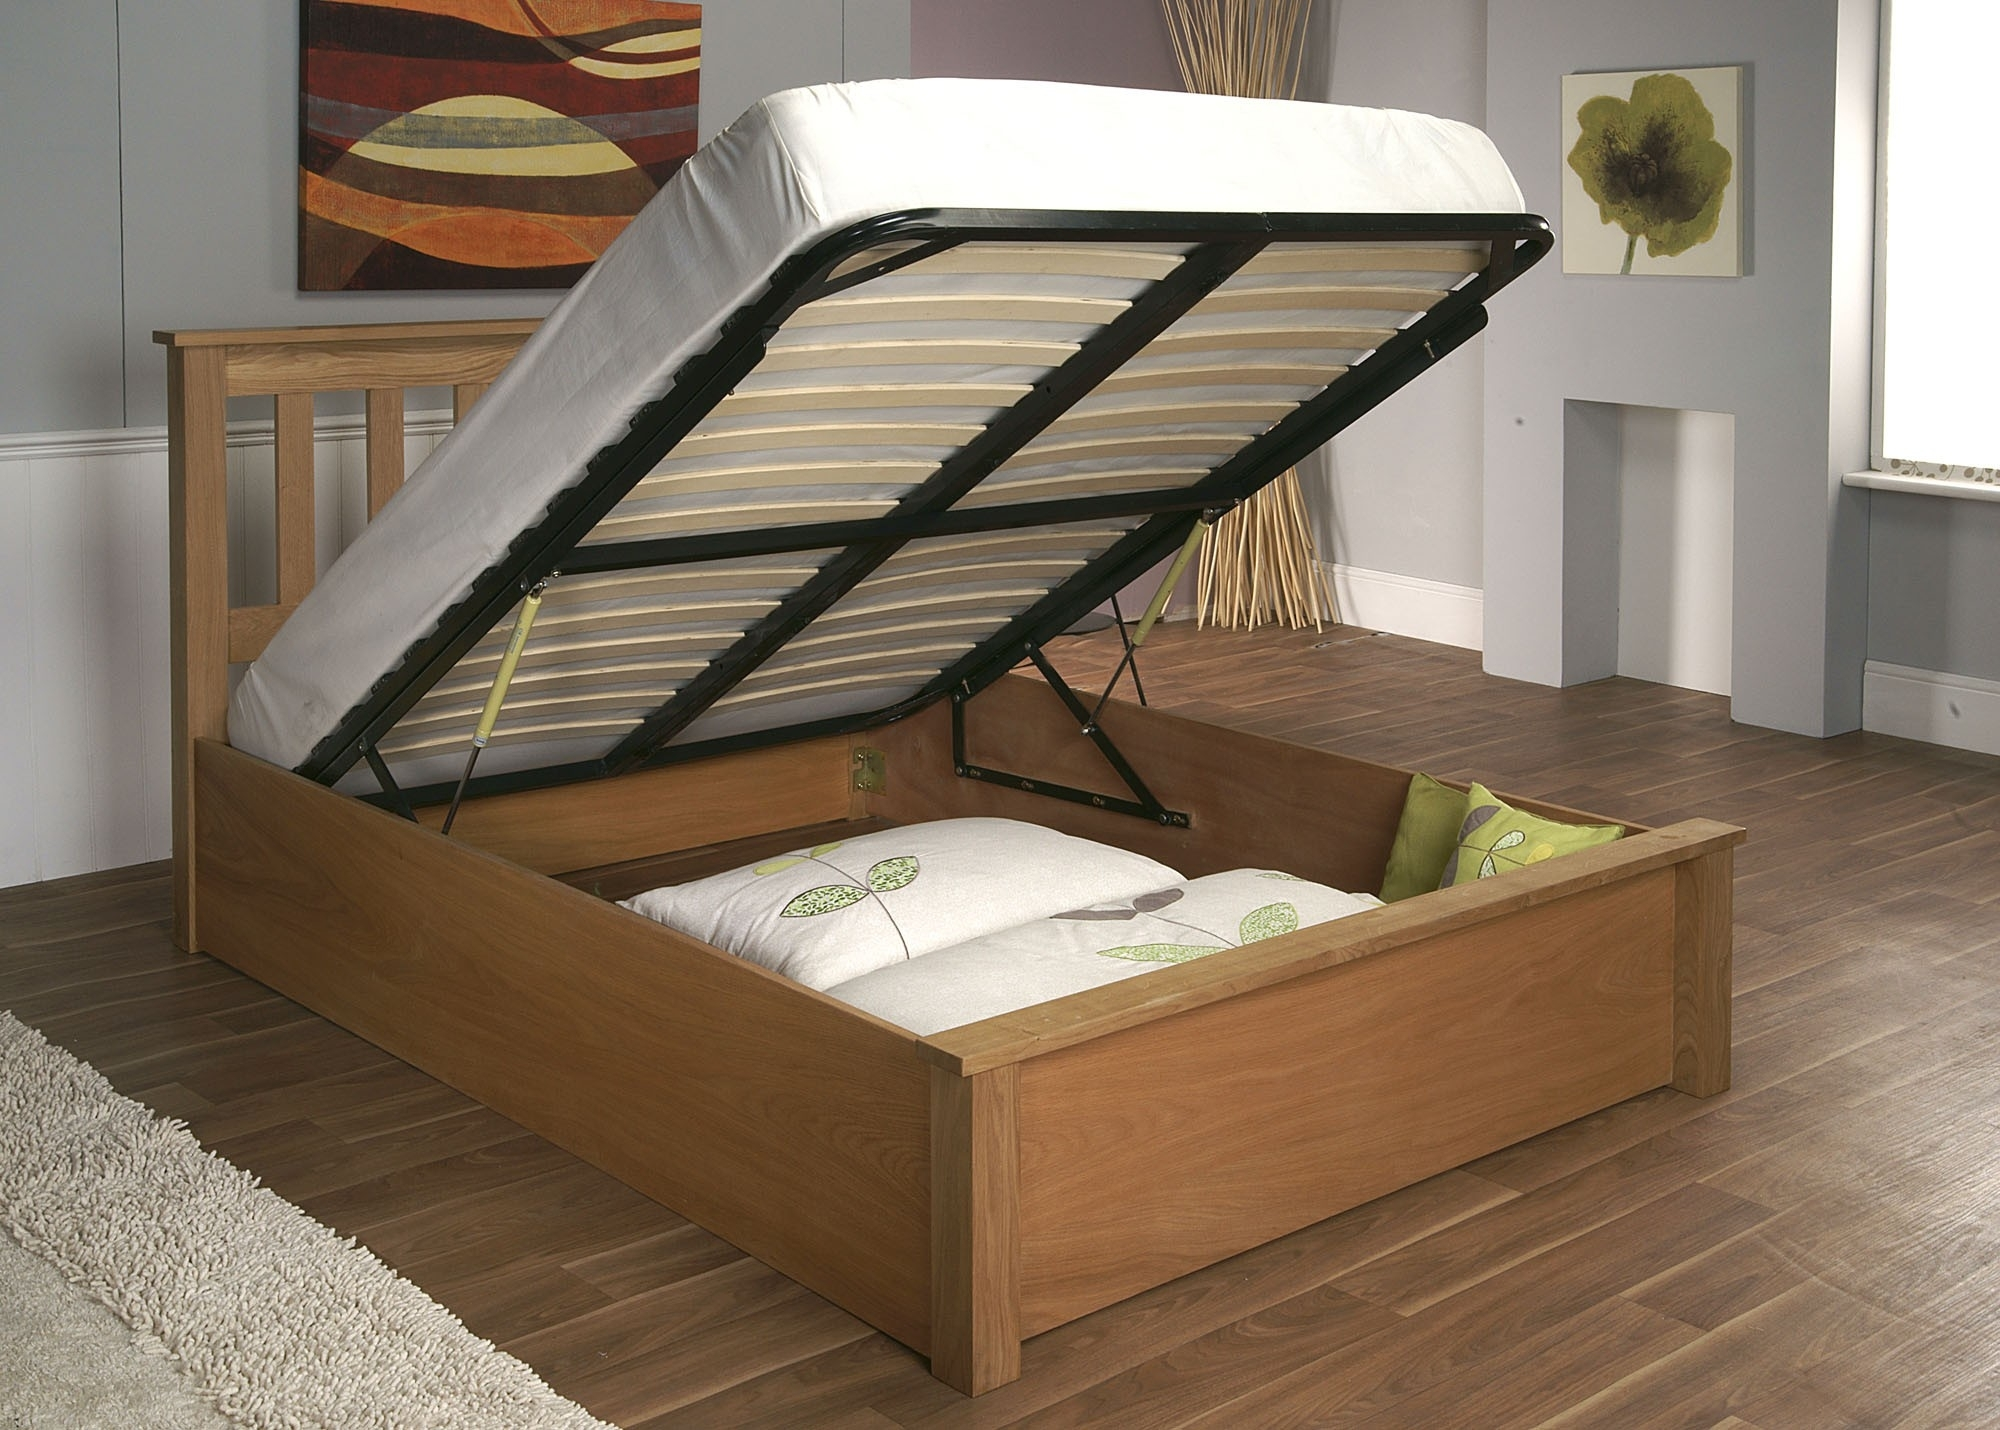 Bed Frames With Storage Space